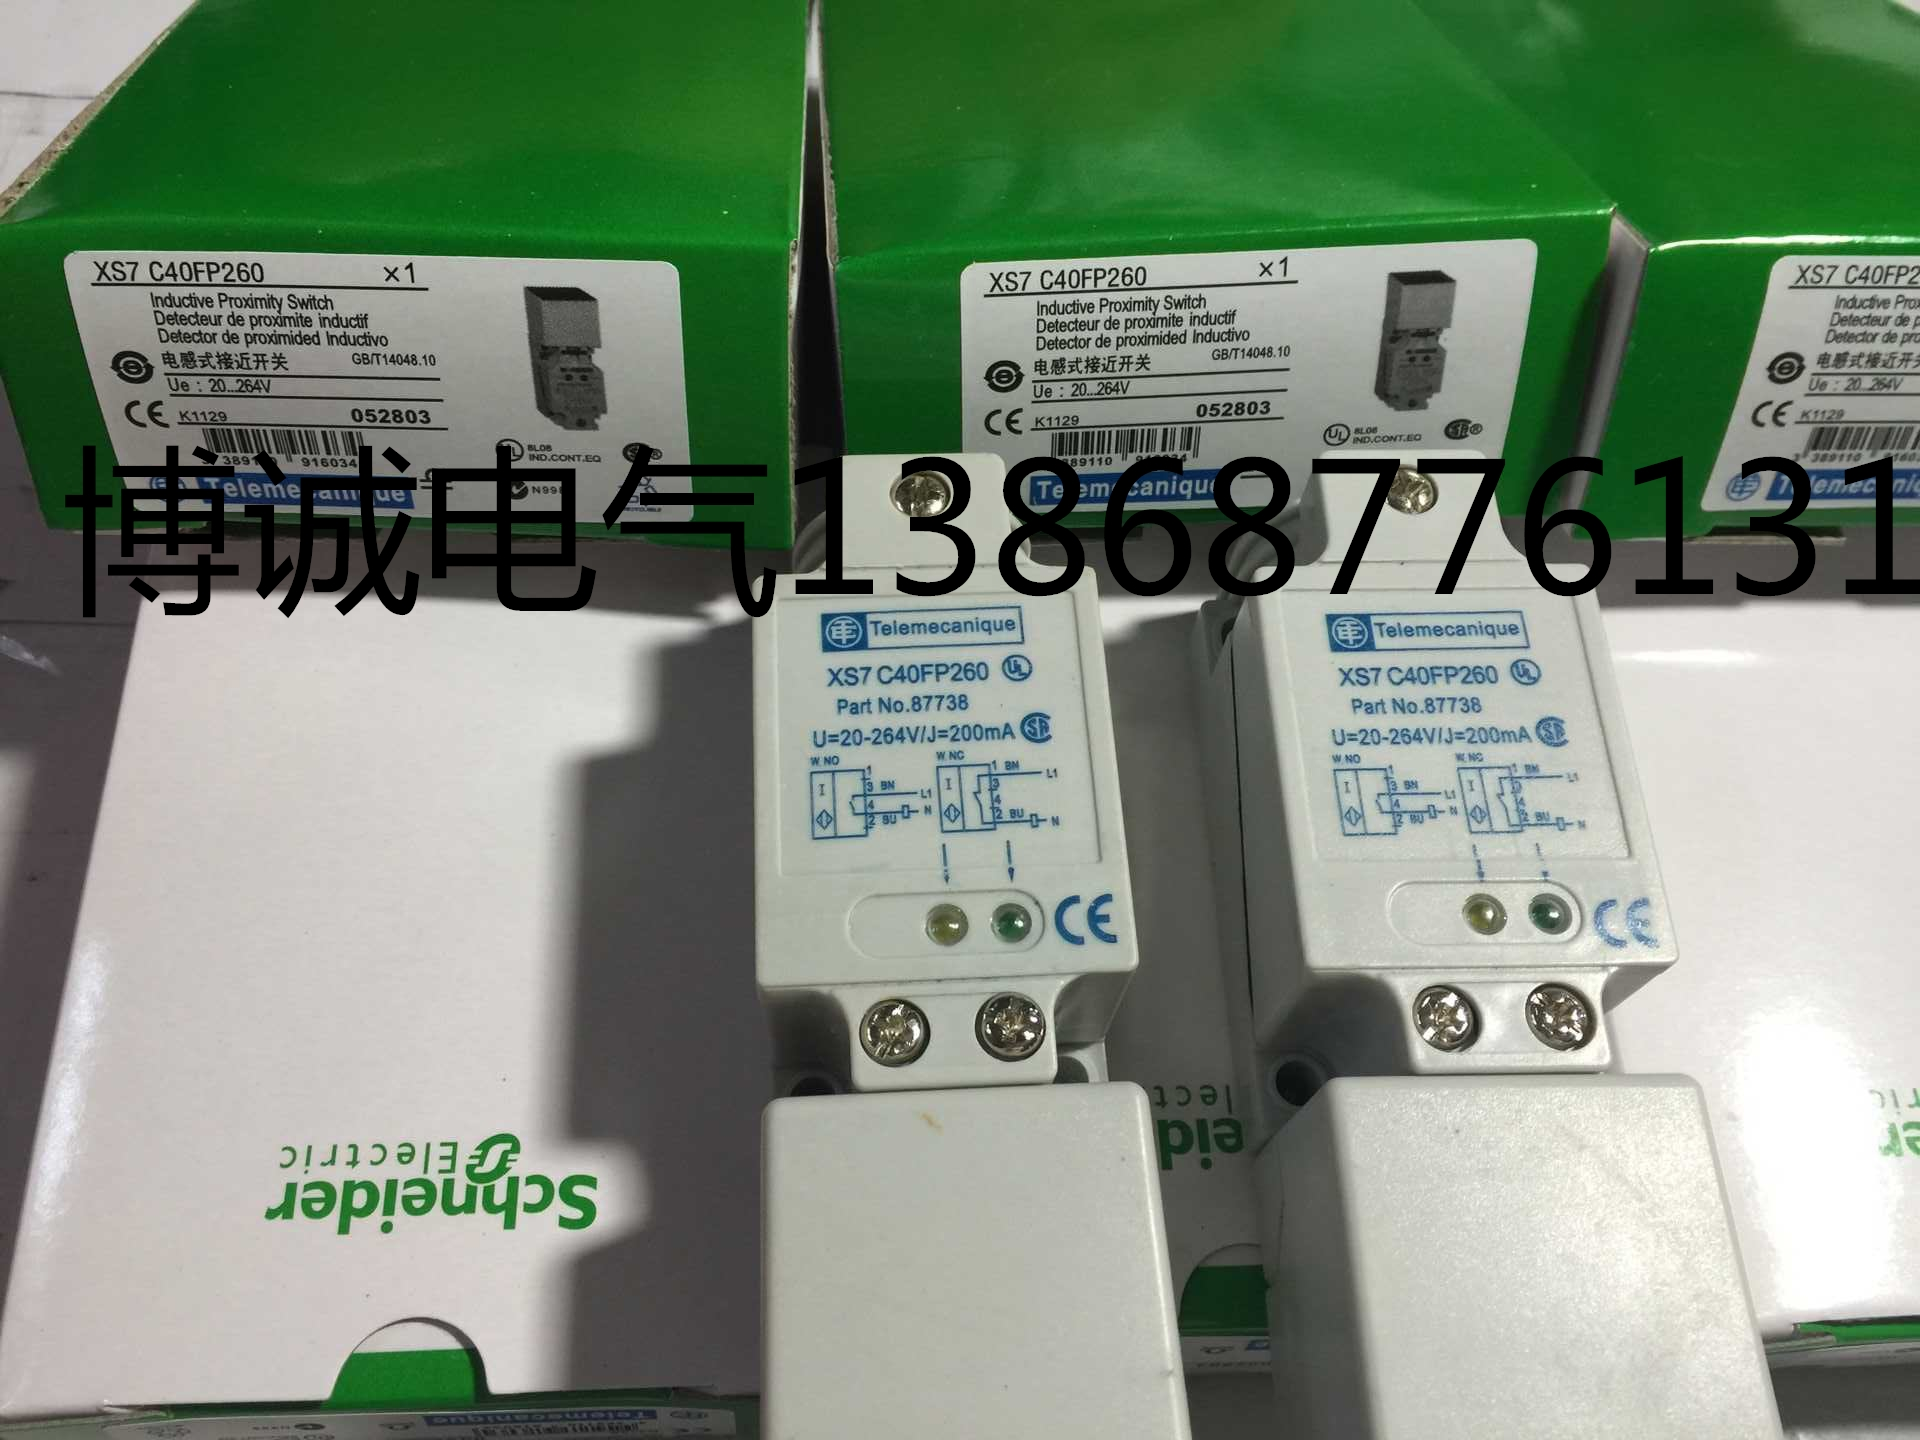 New original XS7-C40FP260 Warranty For Two Year new original xsdh407339 warranty for two year